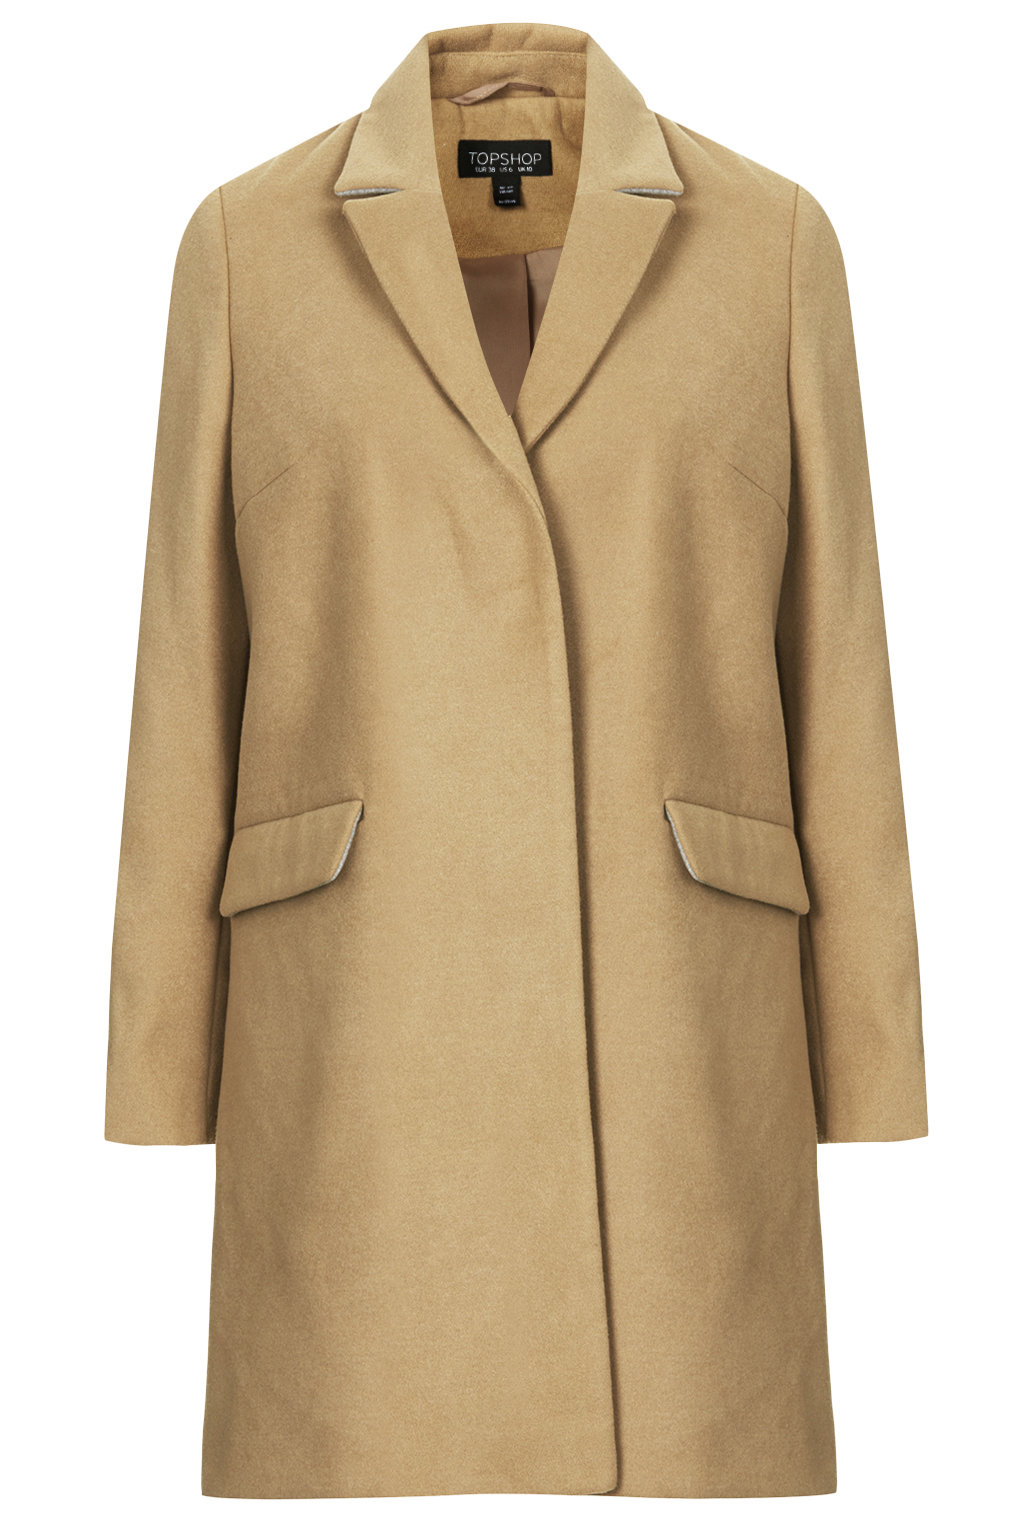 Slim pocket detail coat